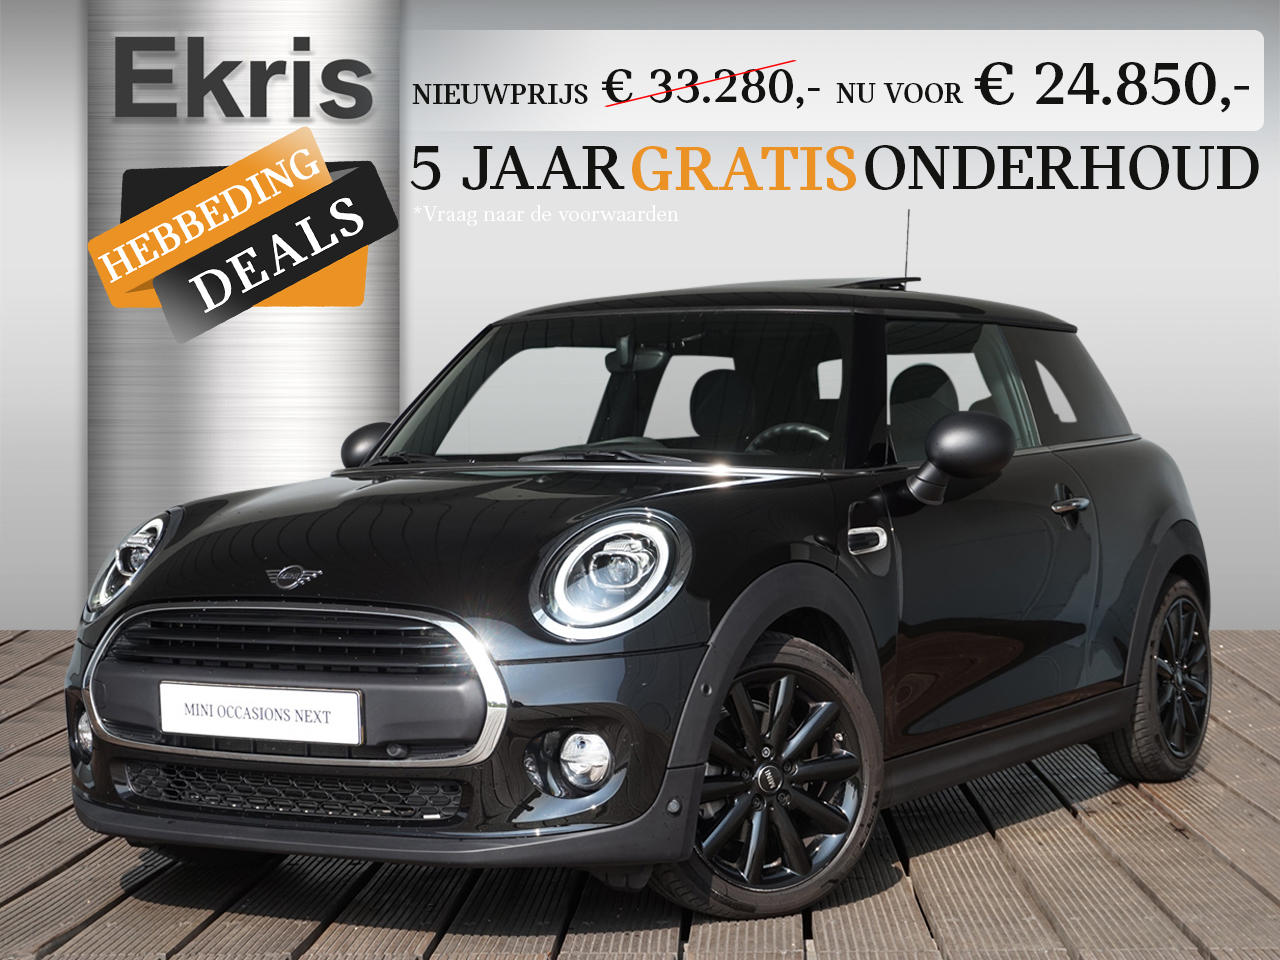 Mini 3-deurs One aut. panoramadak + 17 inch cosmos spoke - hebbeding deals